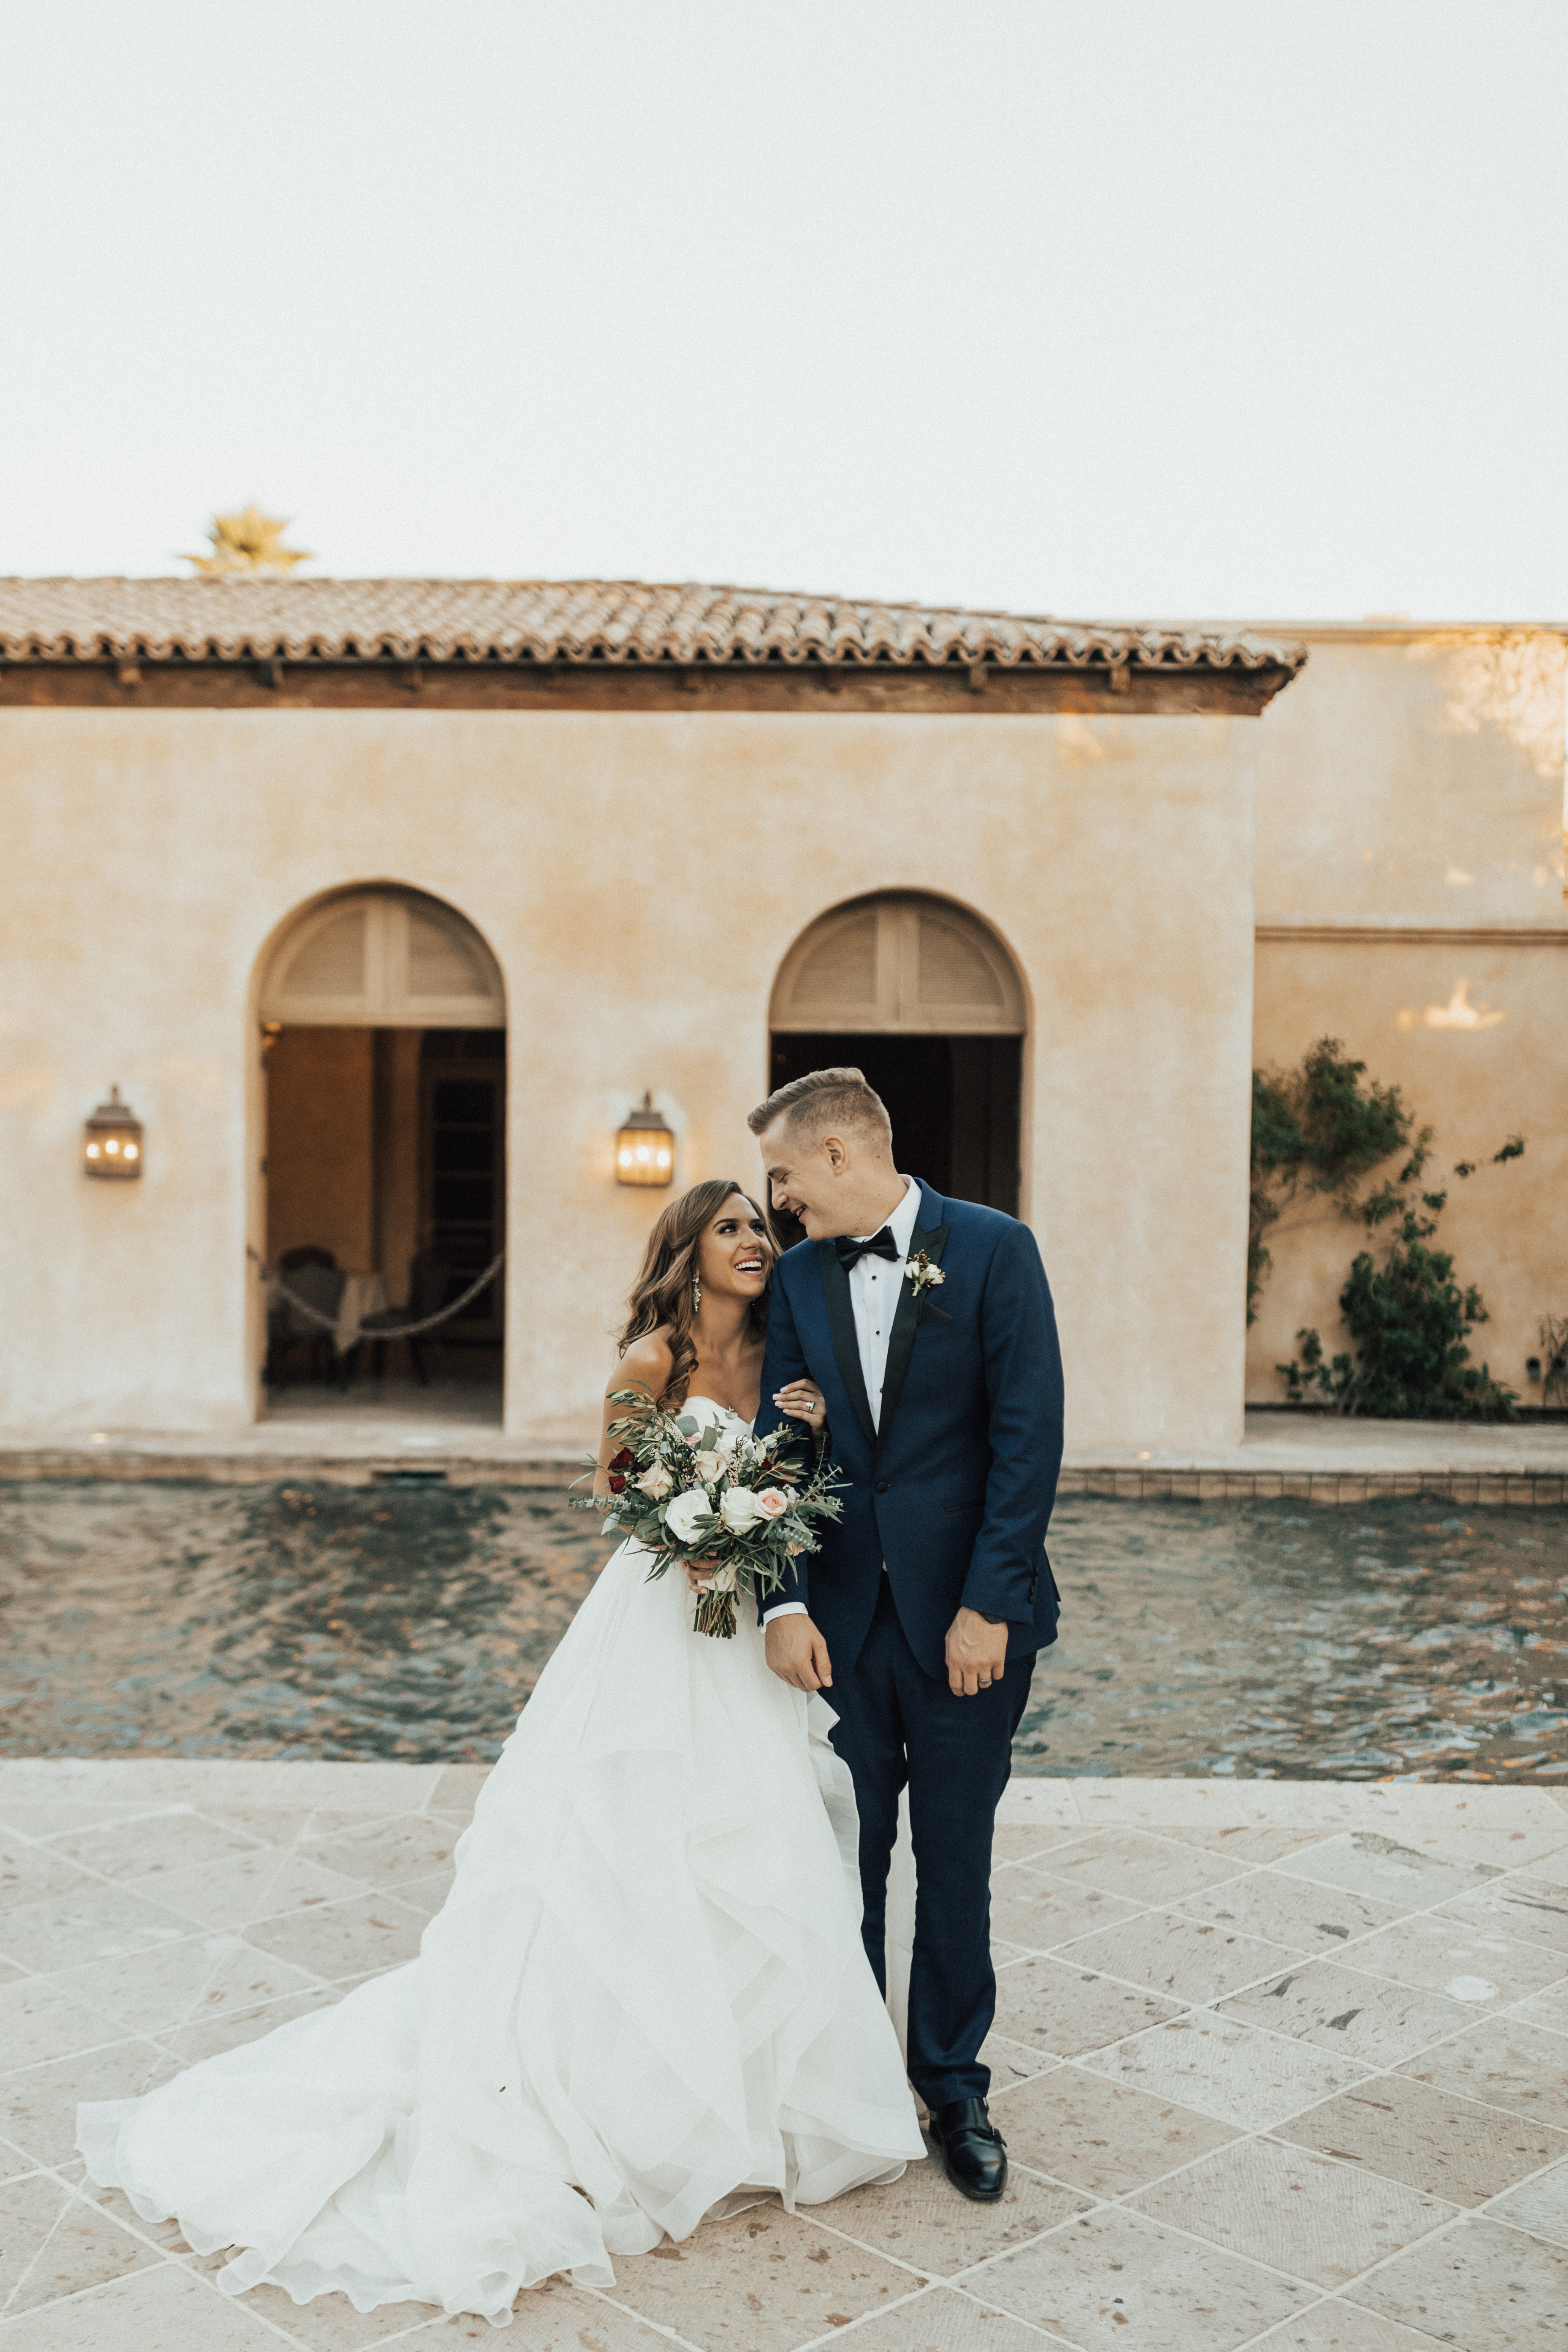 Christina Kristopher Wedding-Full Wedding Album-0567